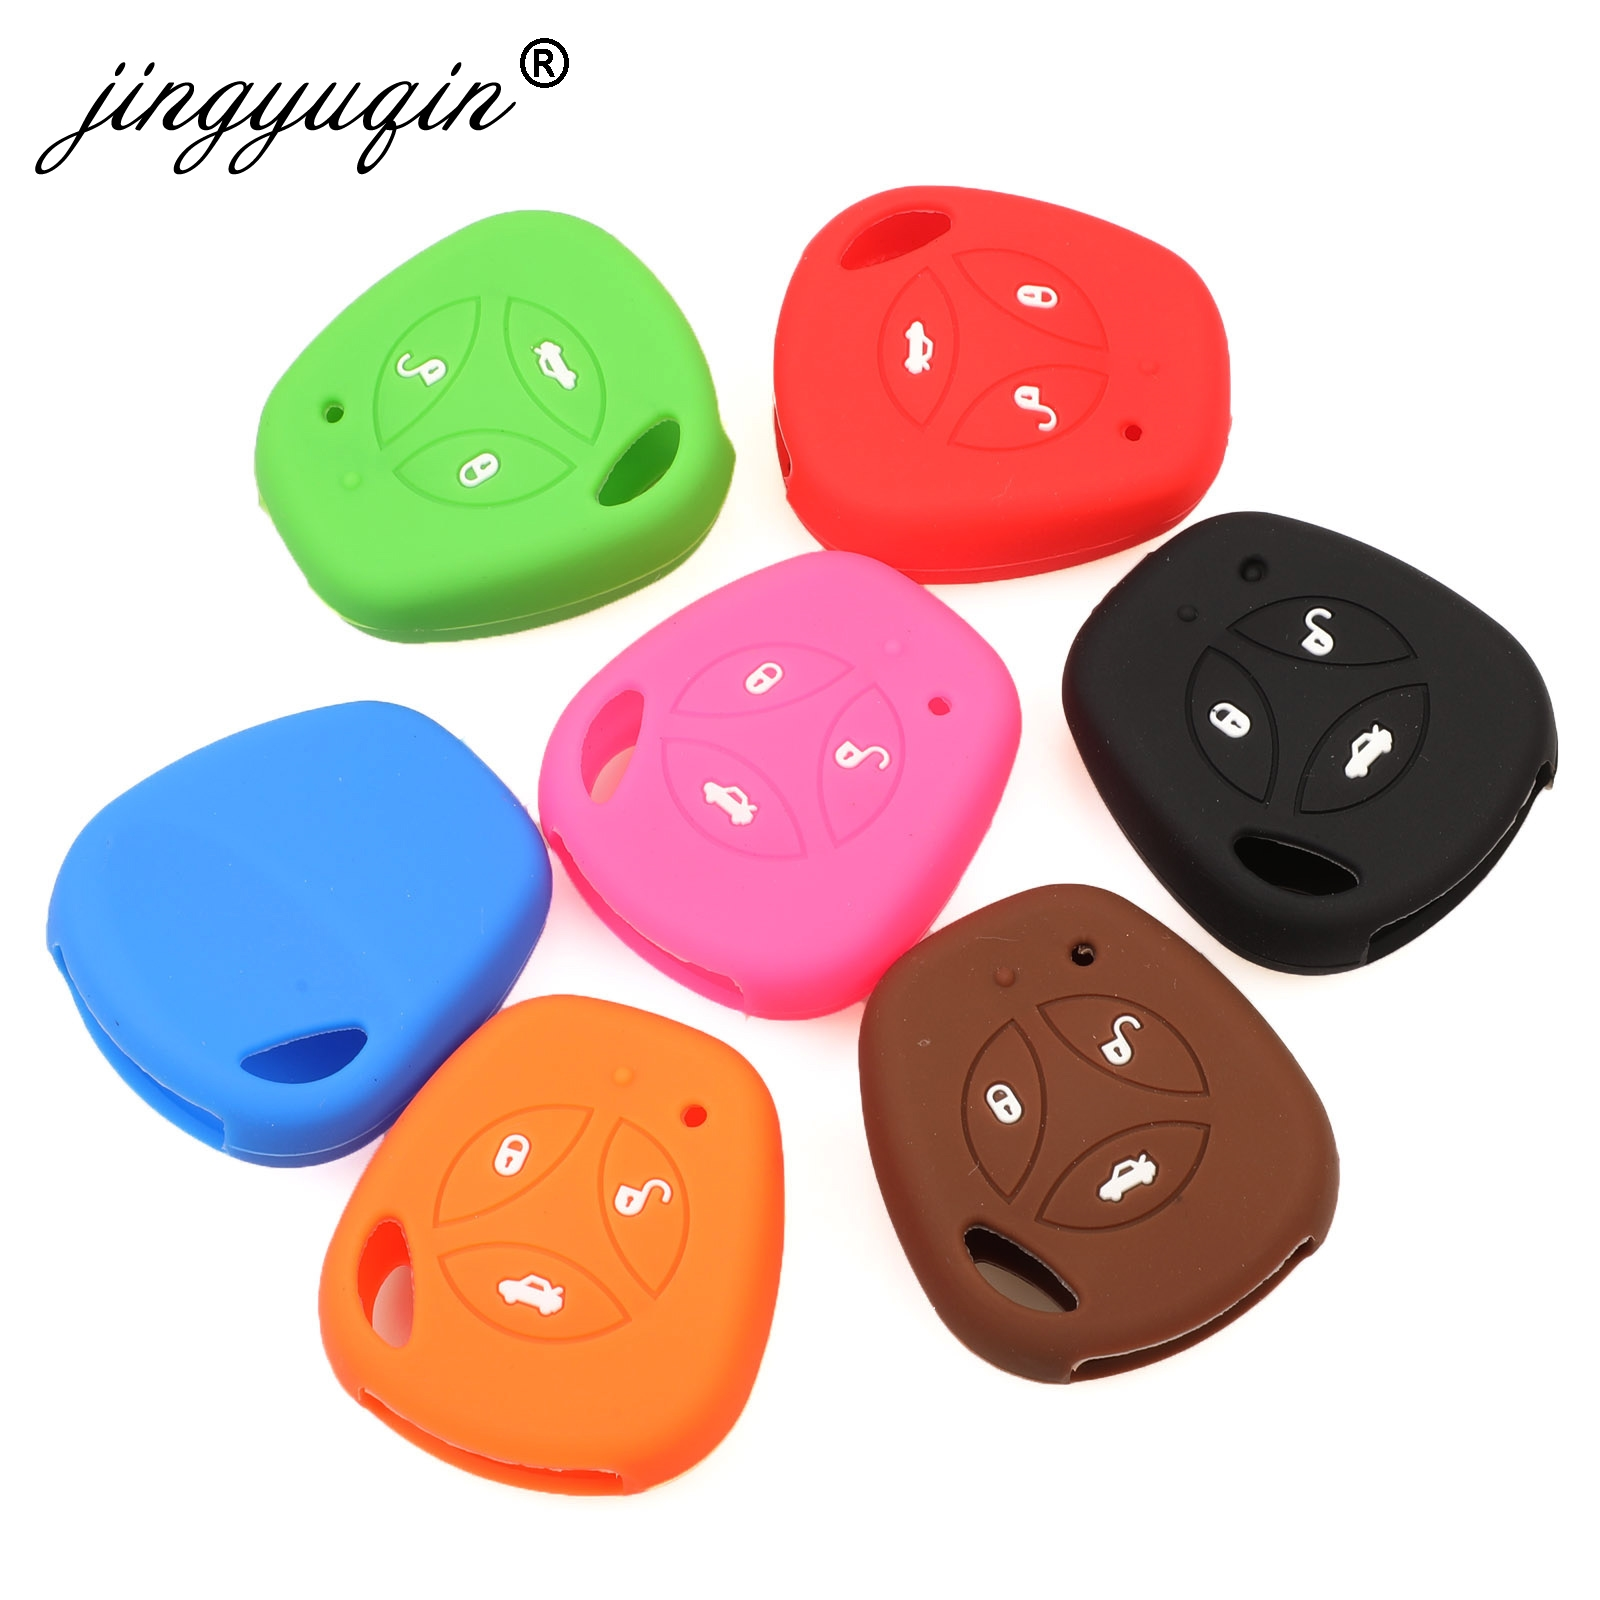 Jingyuqin Silicone Rubber Car Key Case For Lada Largus 4X4 Kalina Granta Priora Soft Silica Gel Protection Key Cover